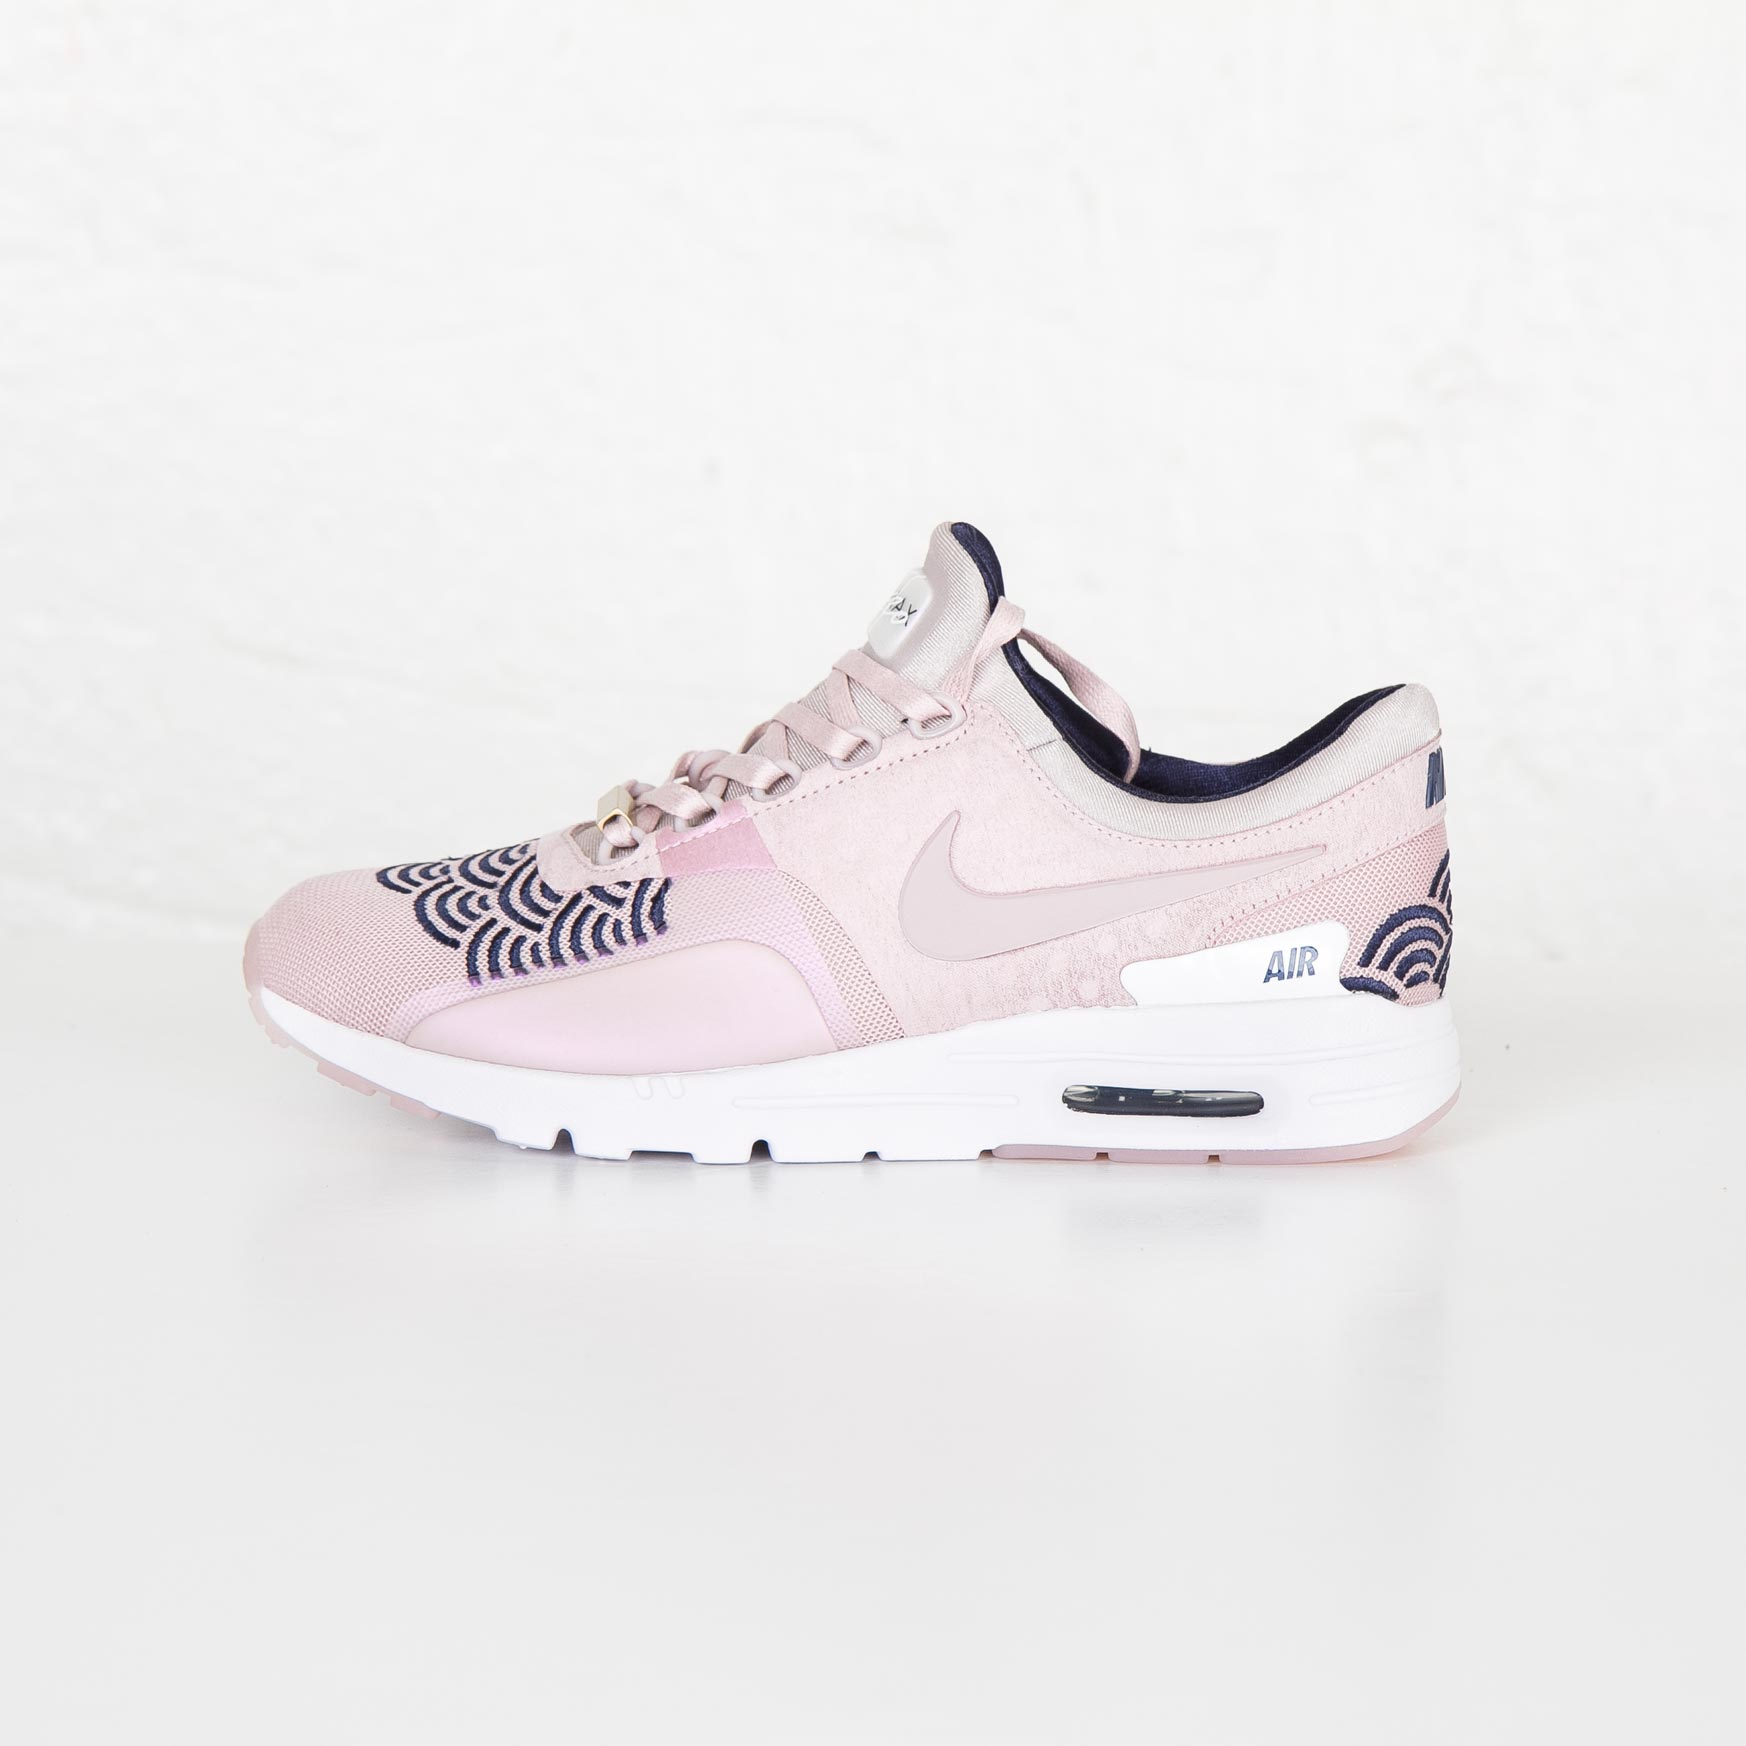 official photos efc2c 32745 726e4 bded8  france nike w air max zero lotc qs bc178 5d9ad